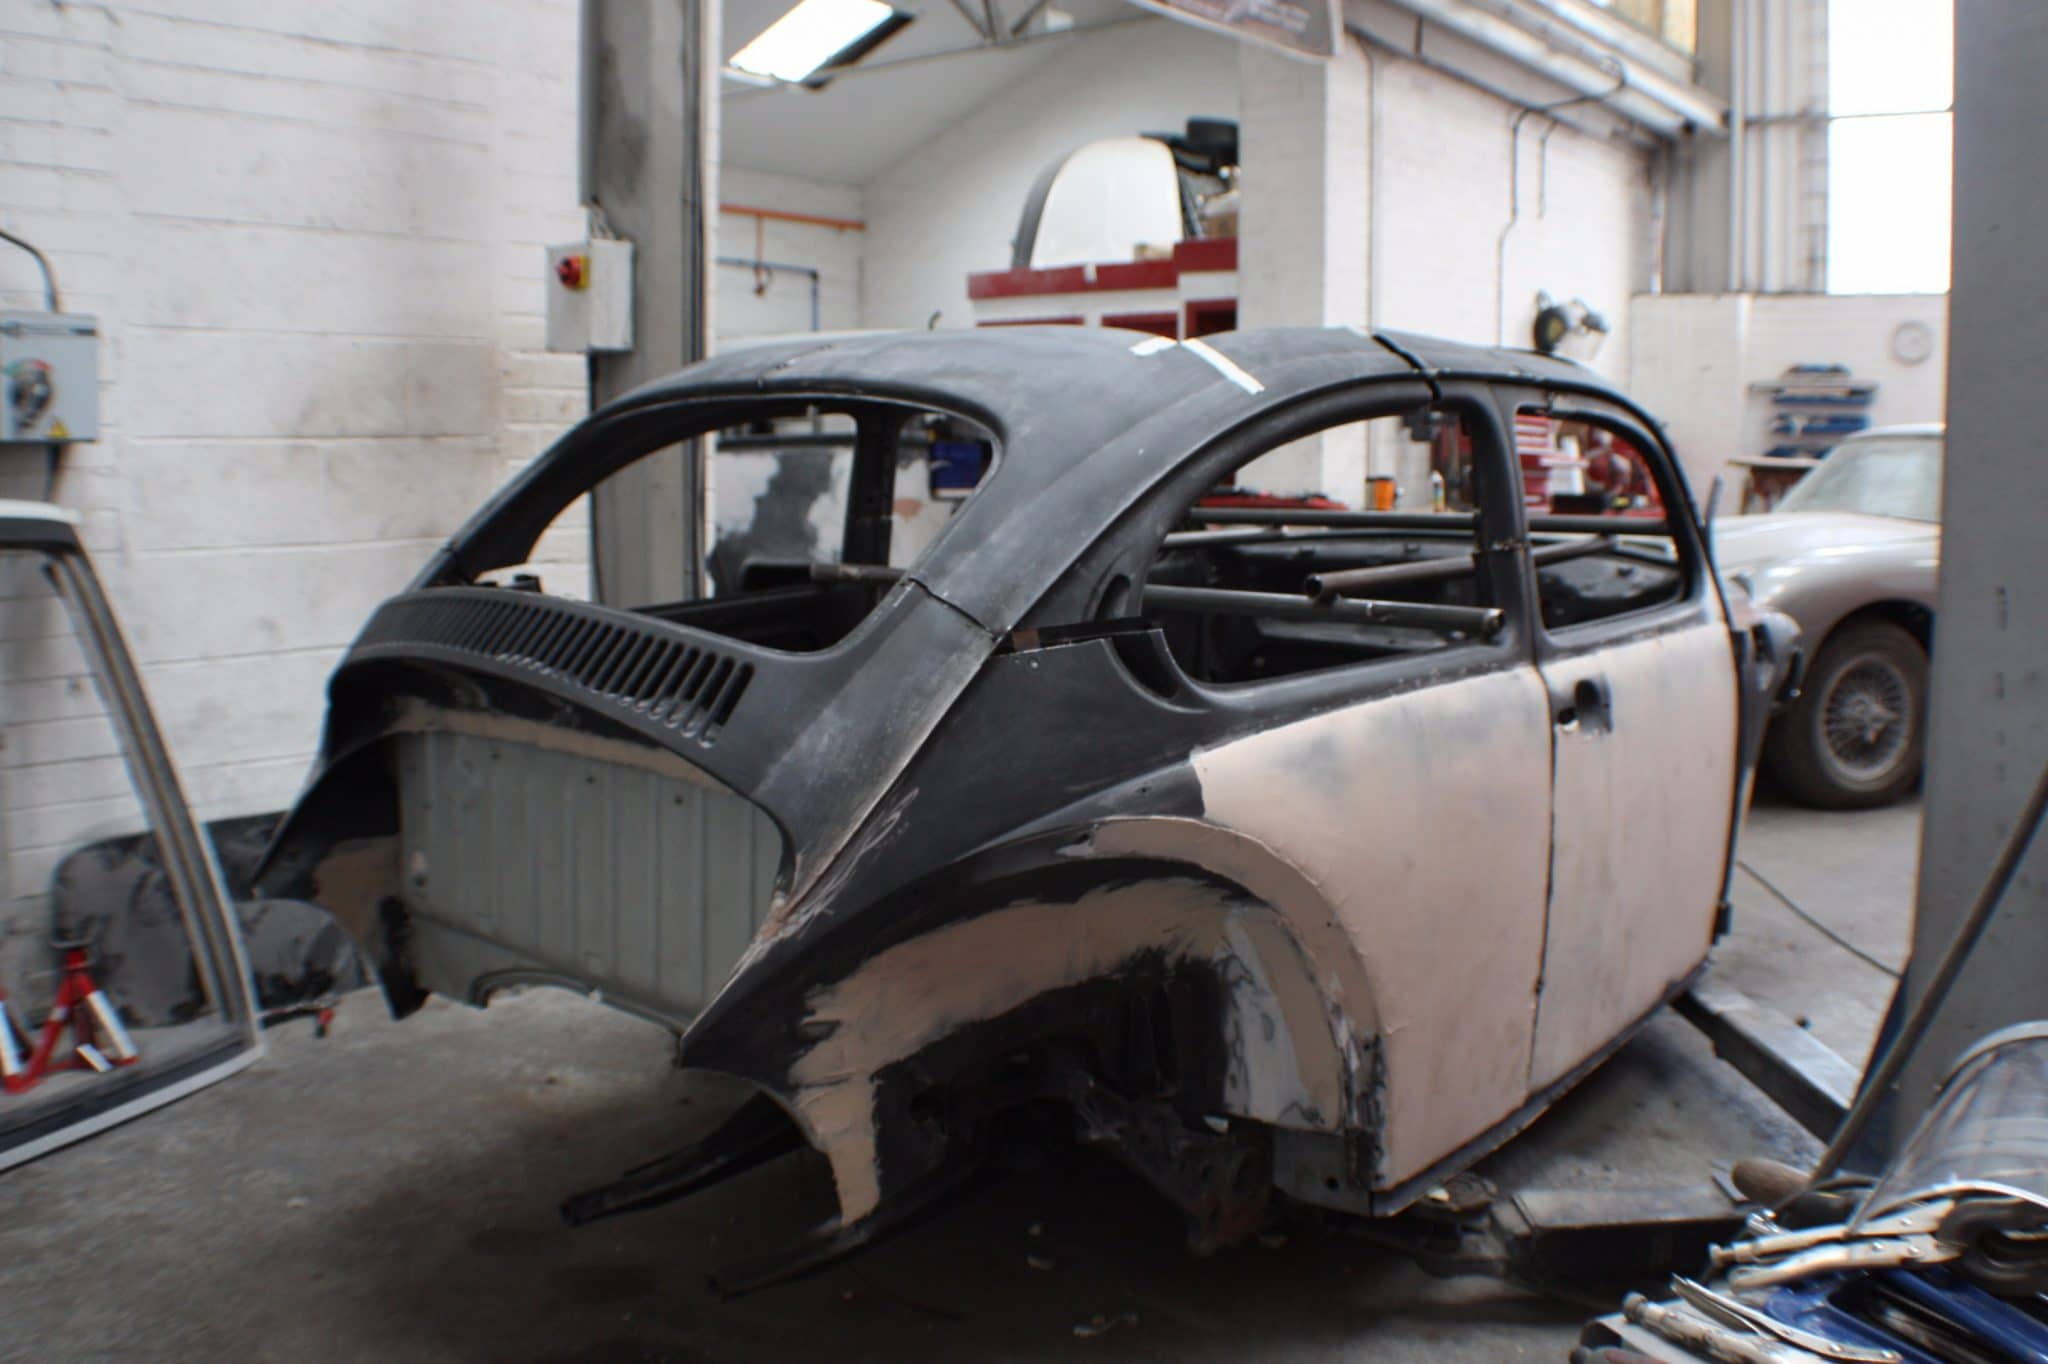 Beetle shell stripped back - sanded metal - black and cream